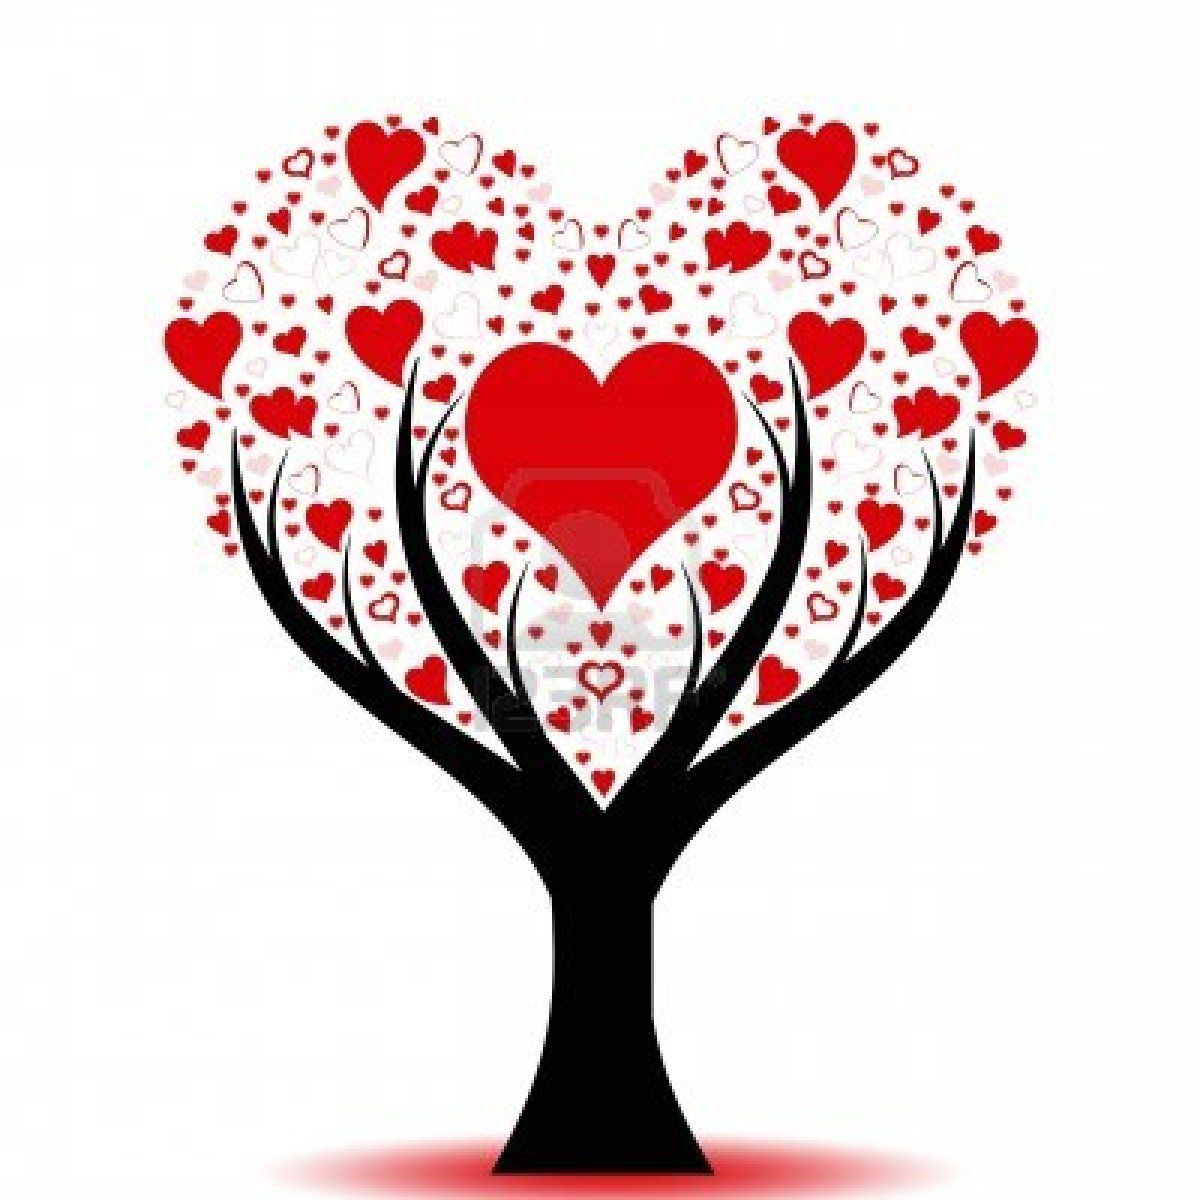 Red Heart with Love Luxury Beautiful Animation Hearts Of Red Heart with Love Fresh Love Heart Impremedia